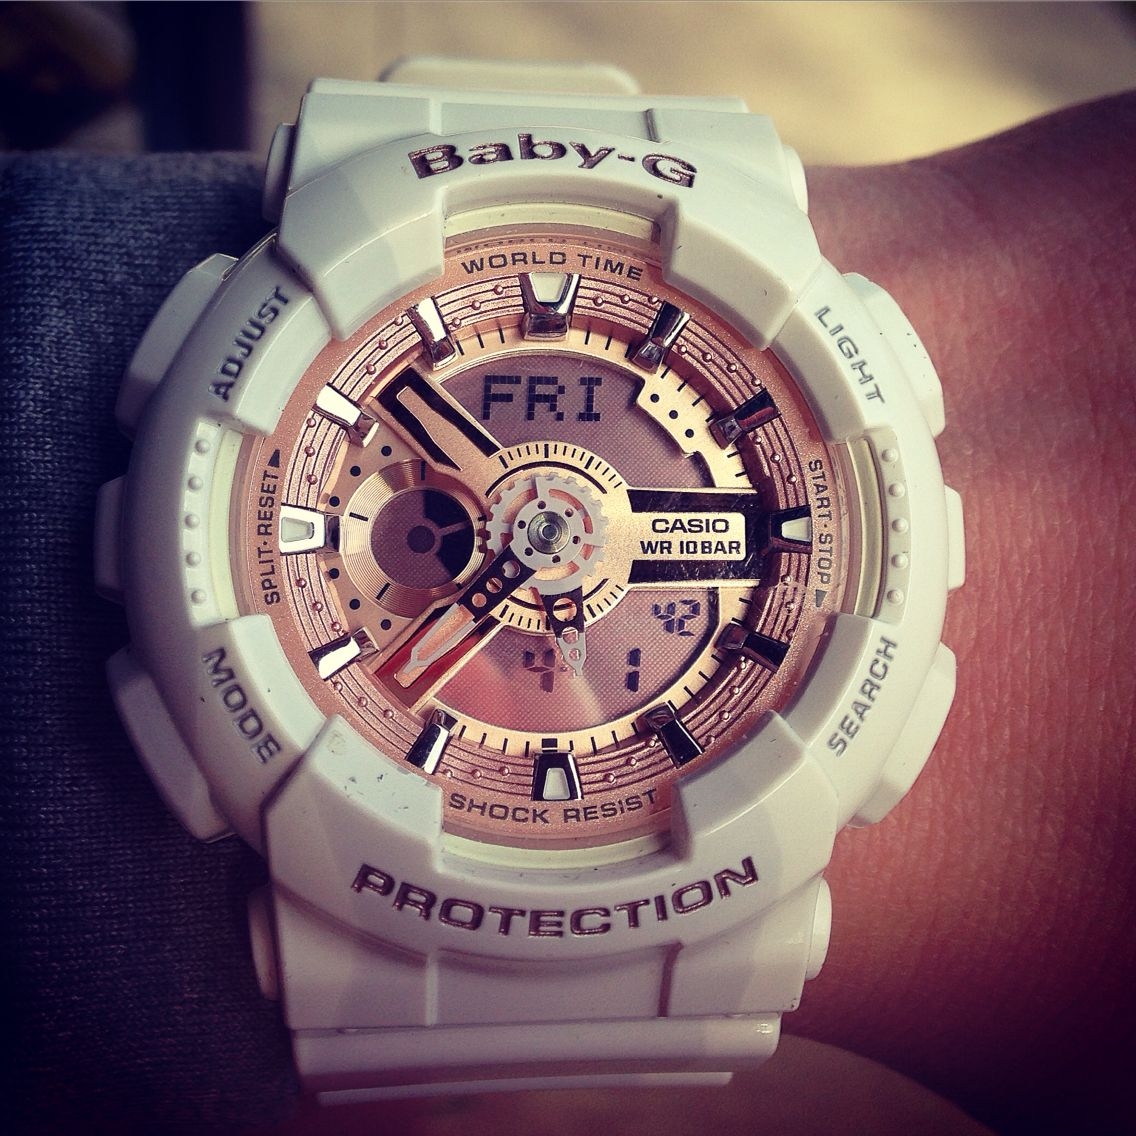 7e742d393638 Instagram  Megan holick12 Baby-g rose gold and white watch. Gshock watch. G-shock  watch women s